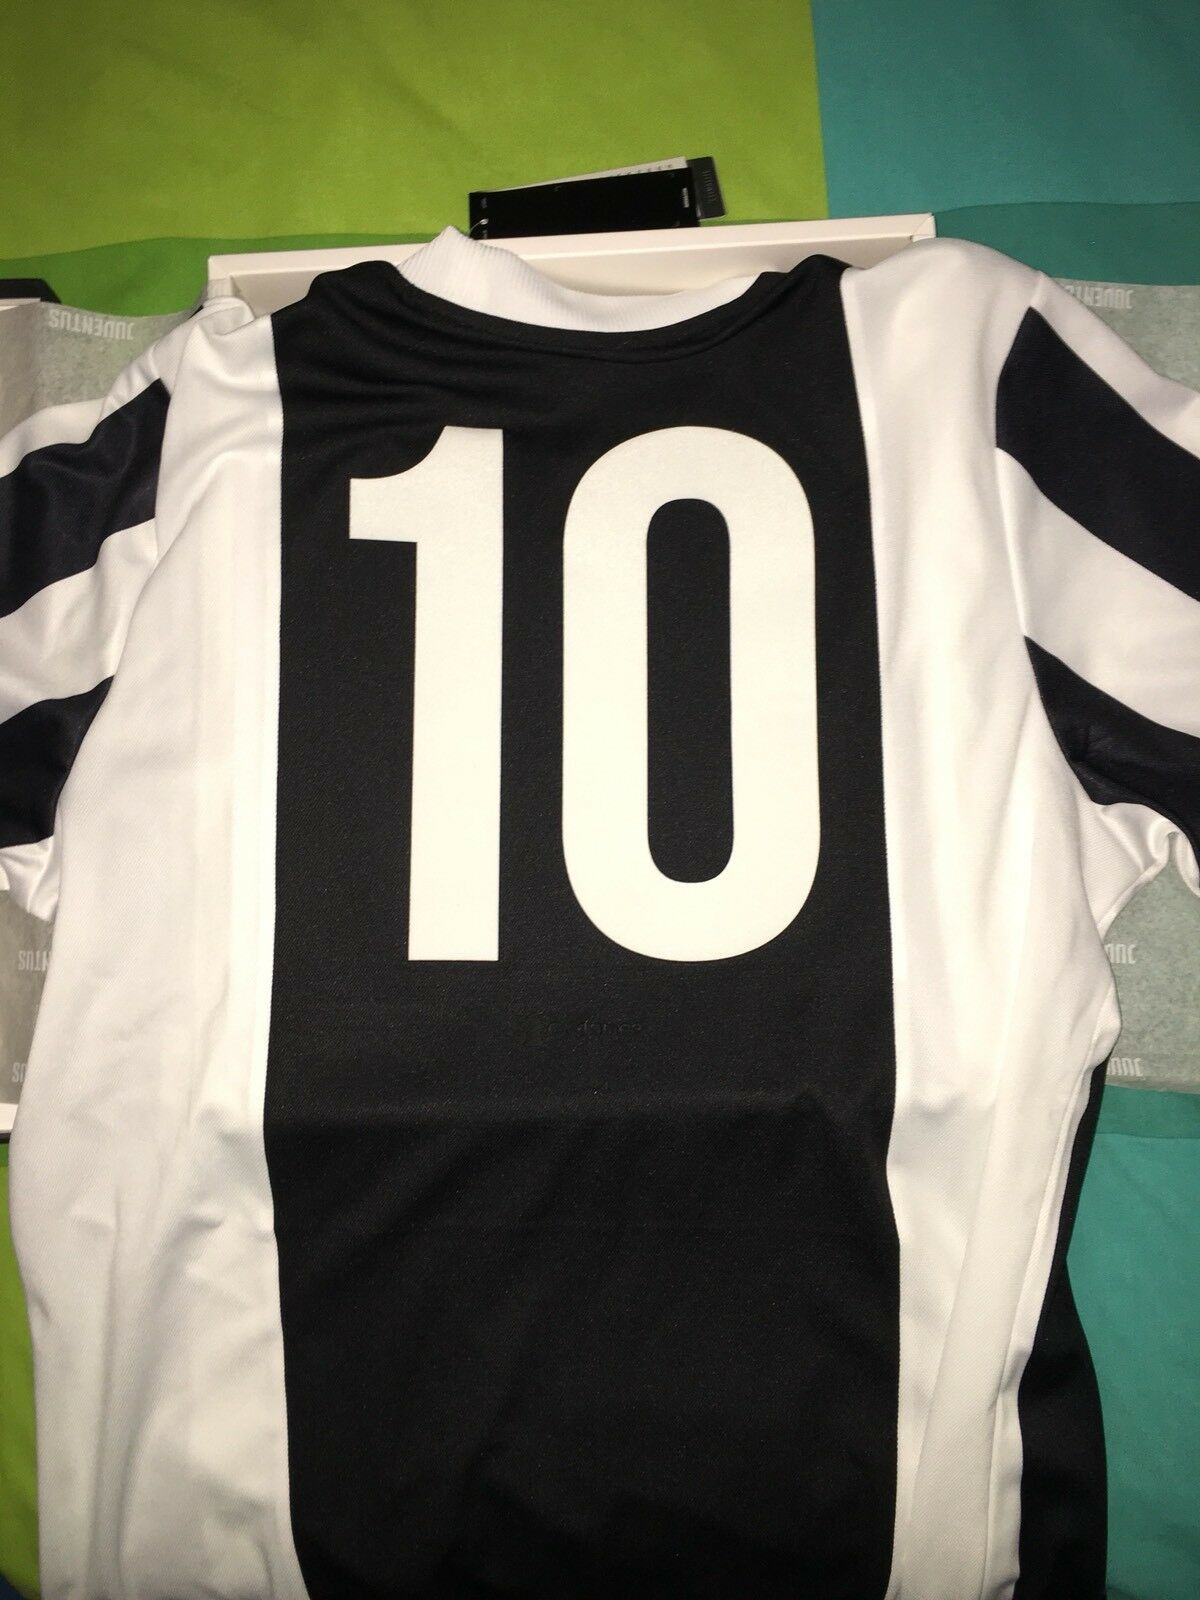 Maglia Shirt Juventus Celebrativa 120 Years N.10 XL LIMITED EDITION 1893 1897